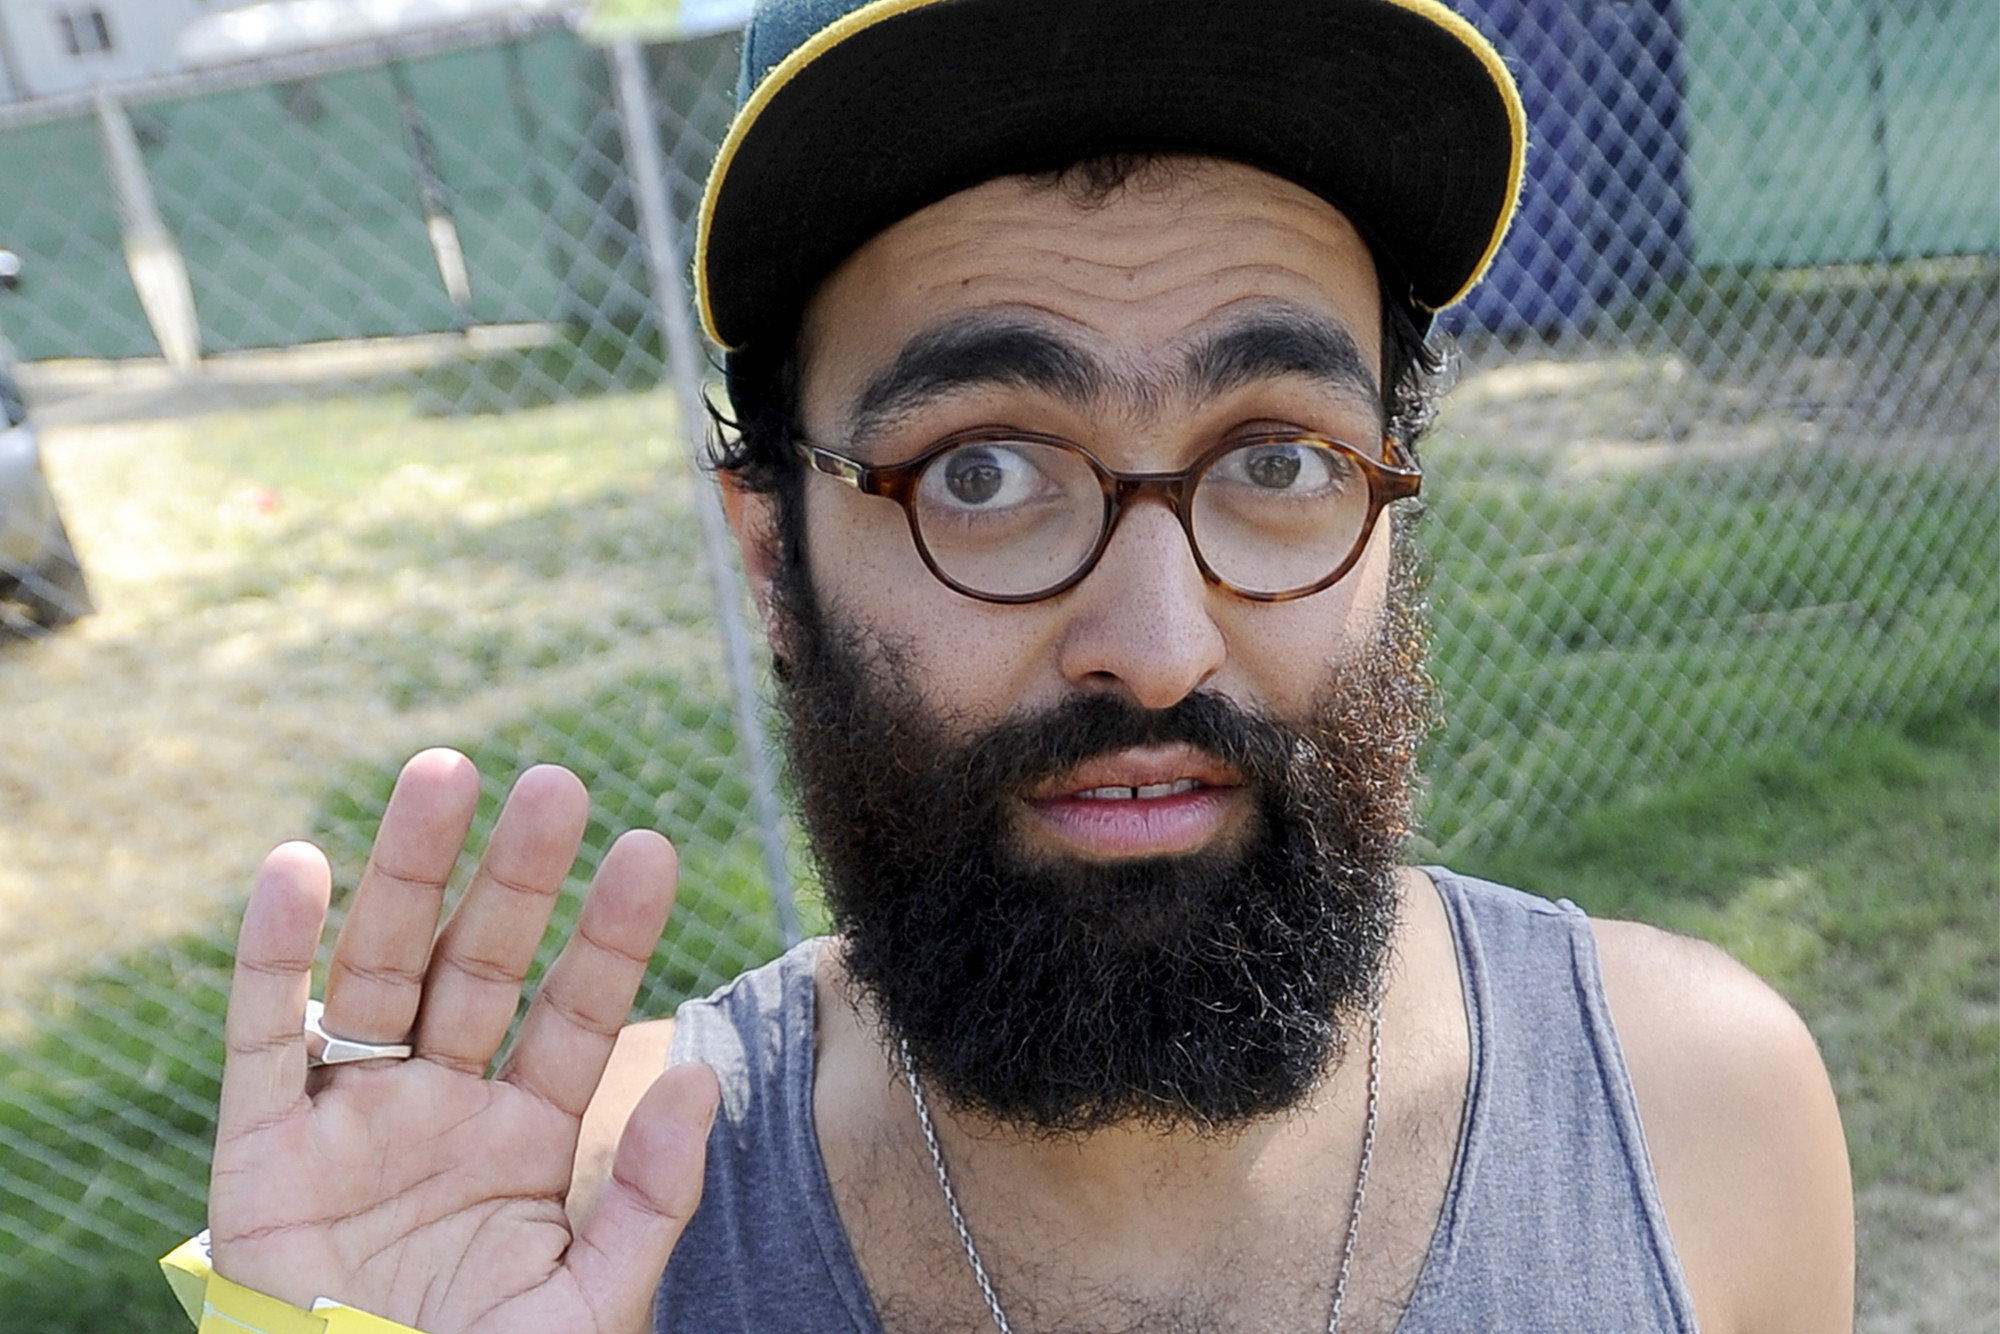 Kool A.D., former member of Das Racist, accused of sexual assault